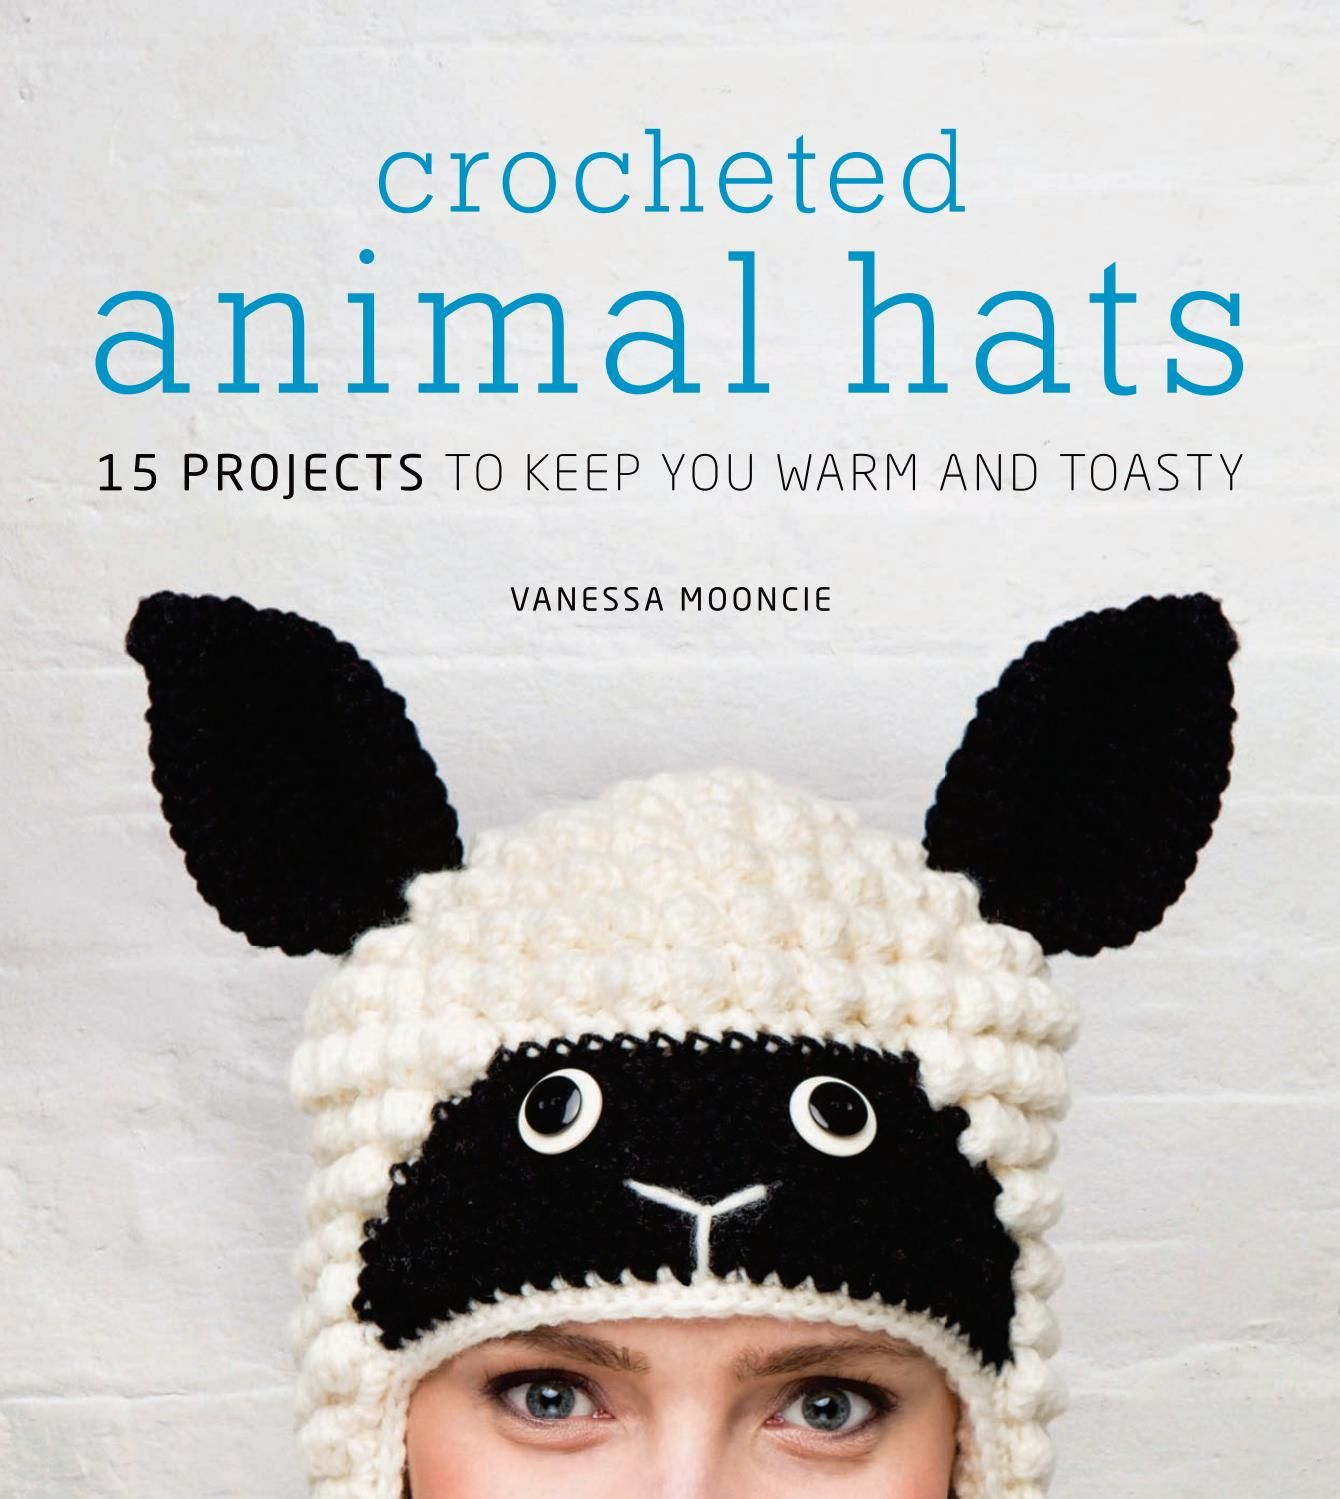 Crocheted animal hats 15 projects to keep you warm and toasty ...